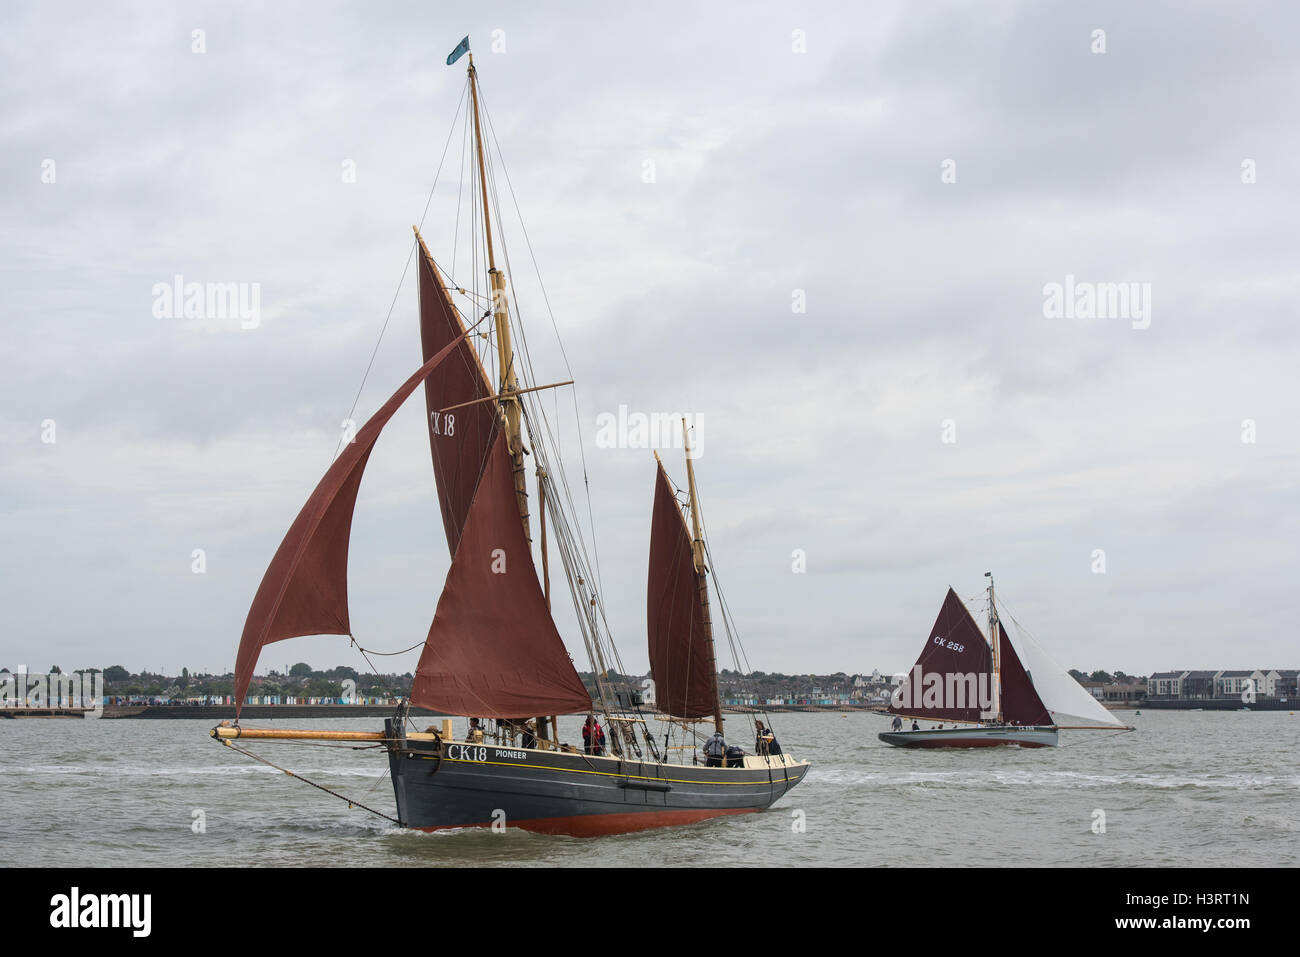 Sailing smack CK18 Pioneer tacking off Mersea Stone in the Colne estuary at the start of a race. - Stock Image